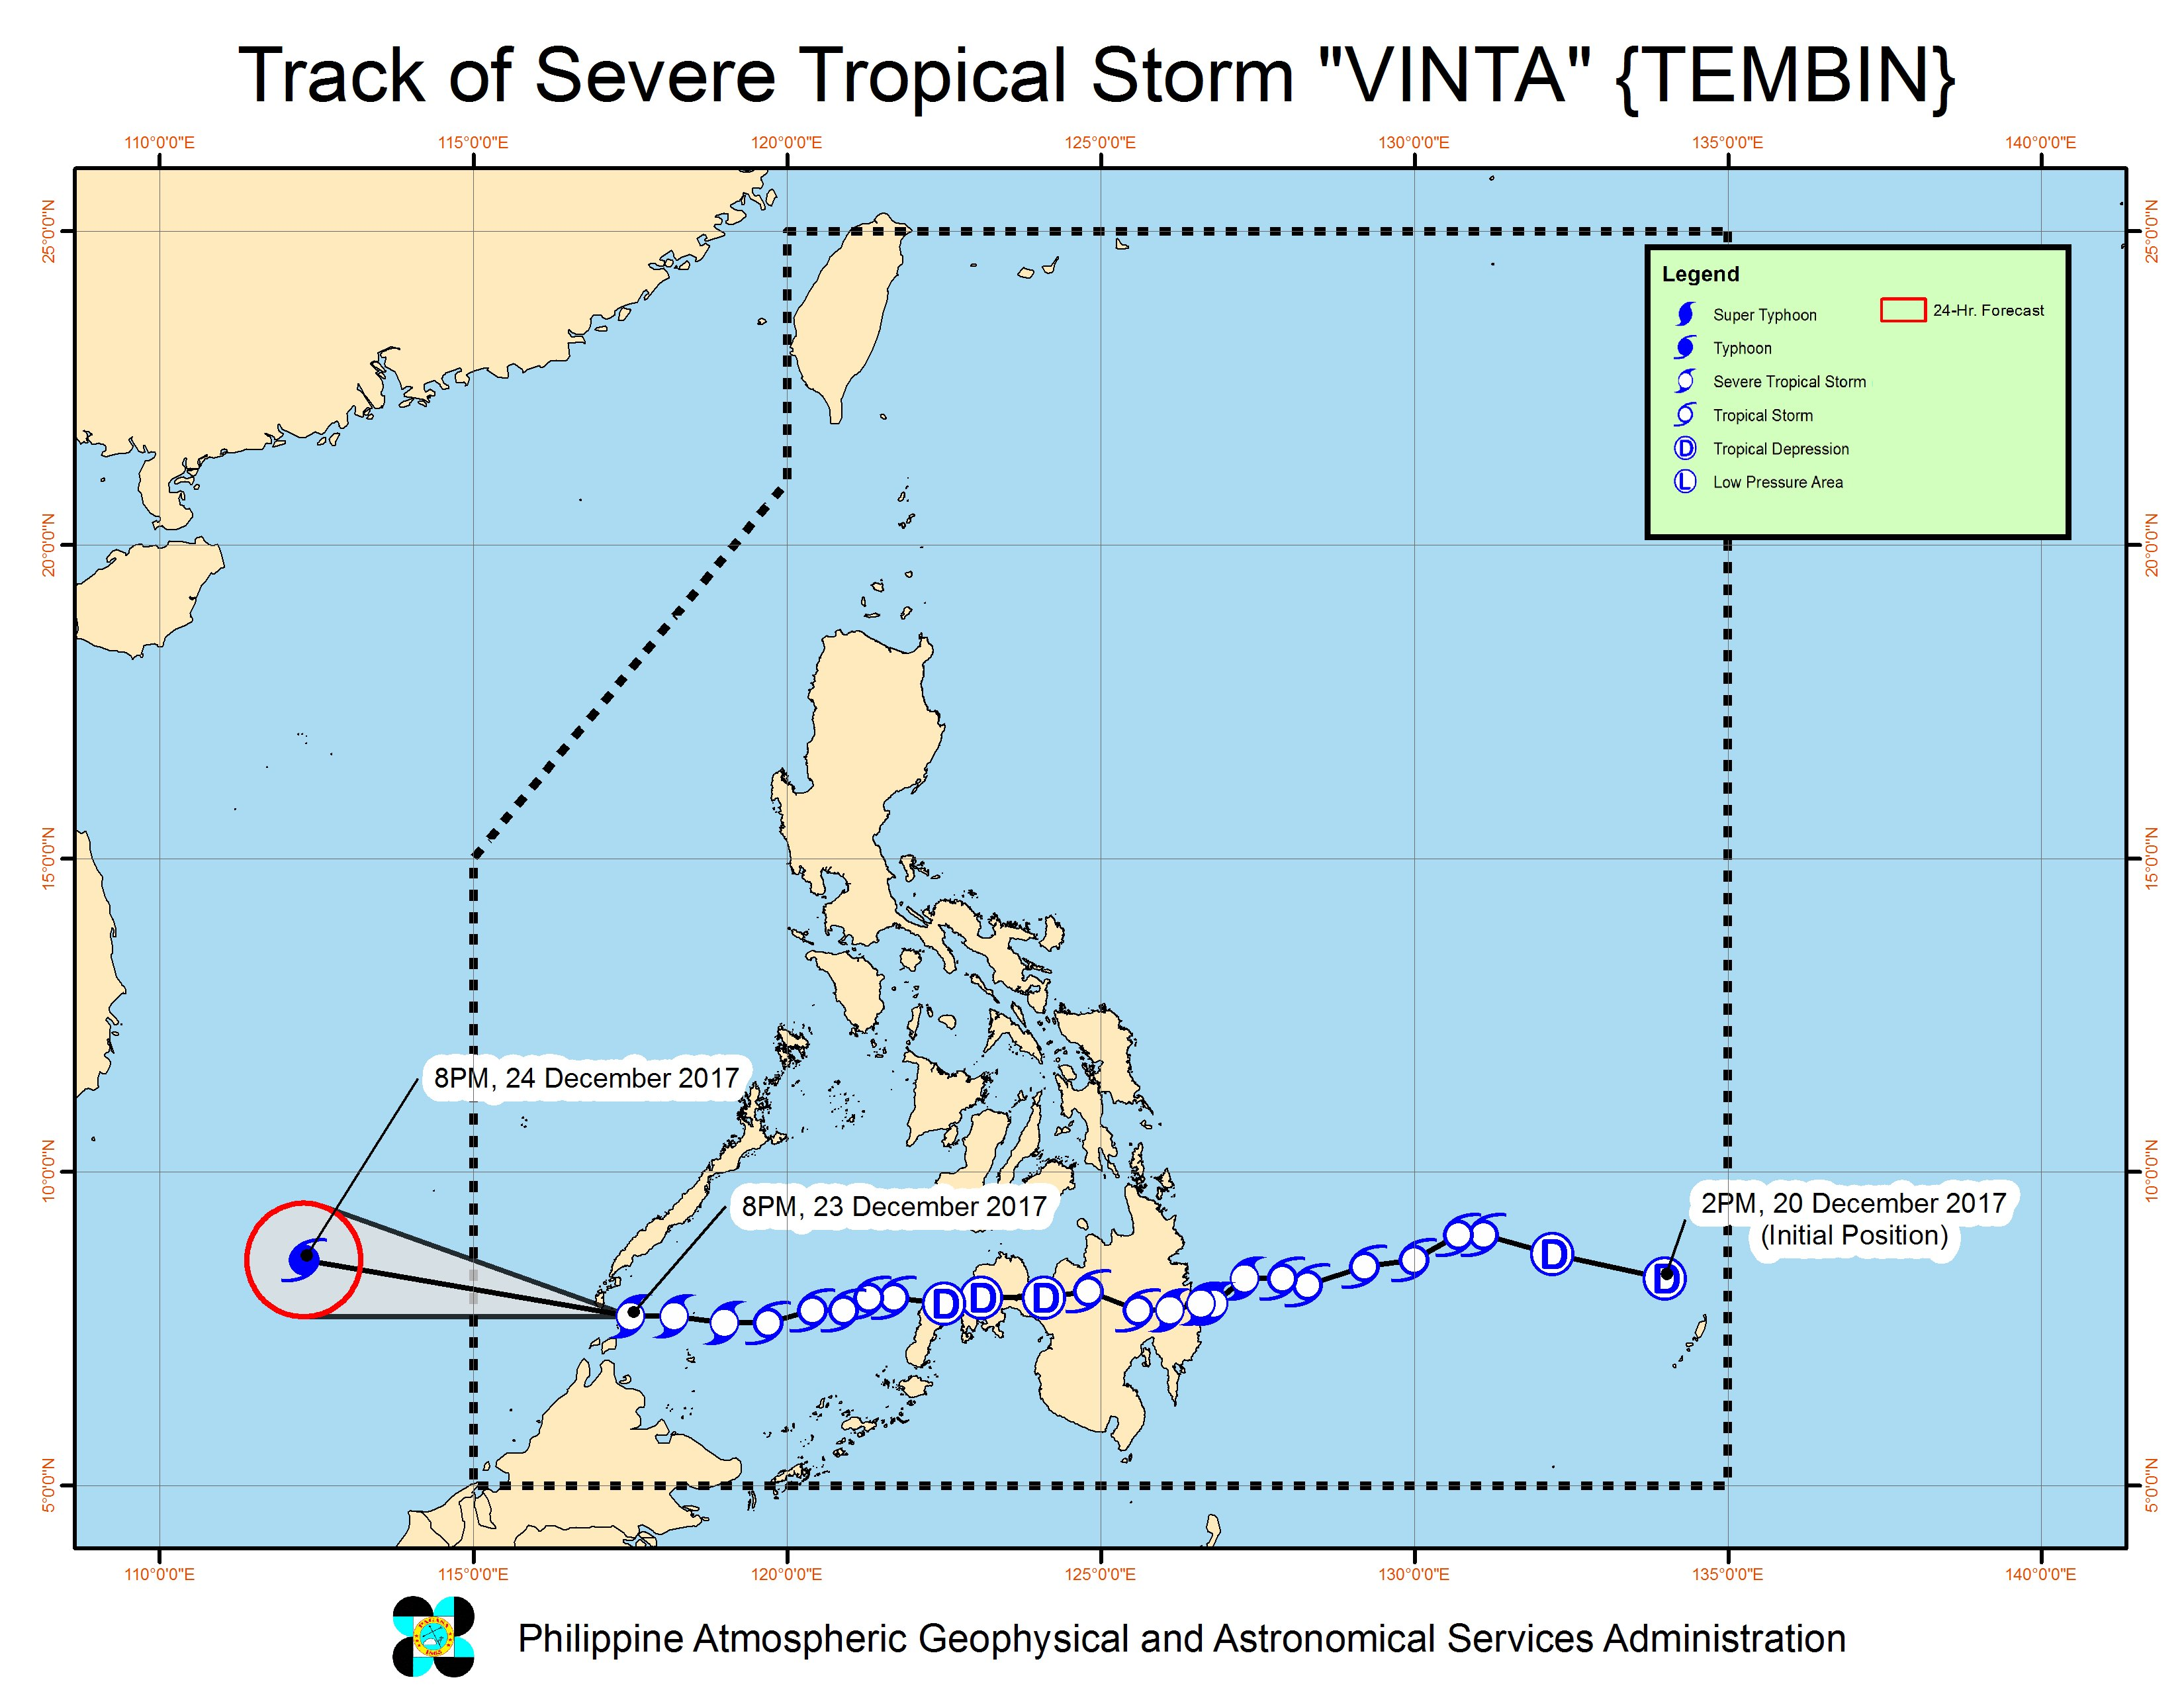 Forecast track of Severe Tropical Storm Vinta as of December 23, 11 pm. Image courtesy of PAGASA